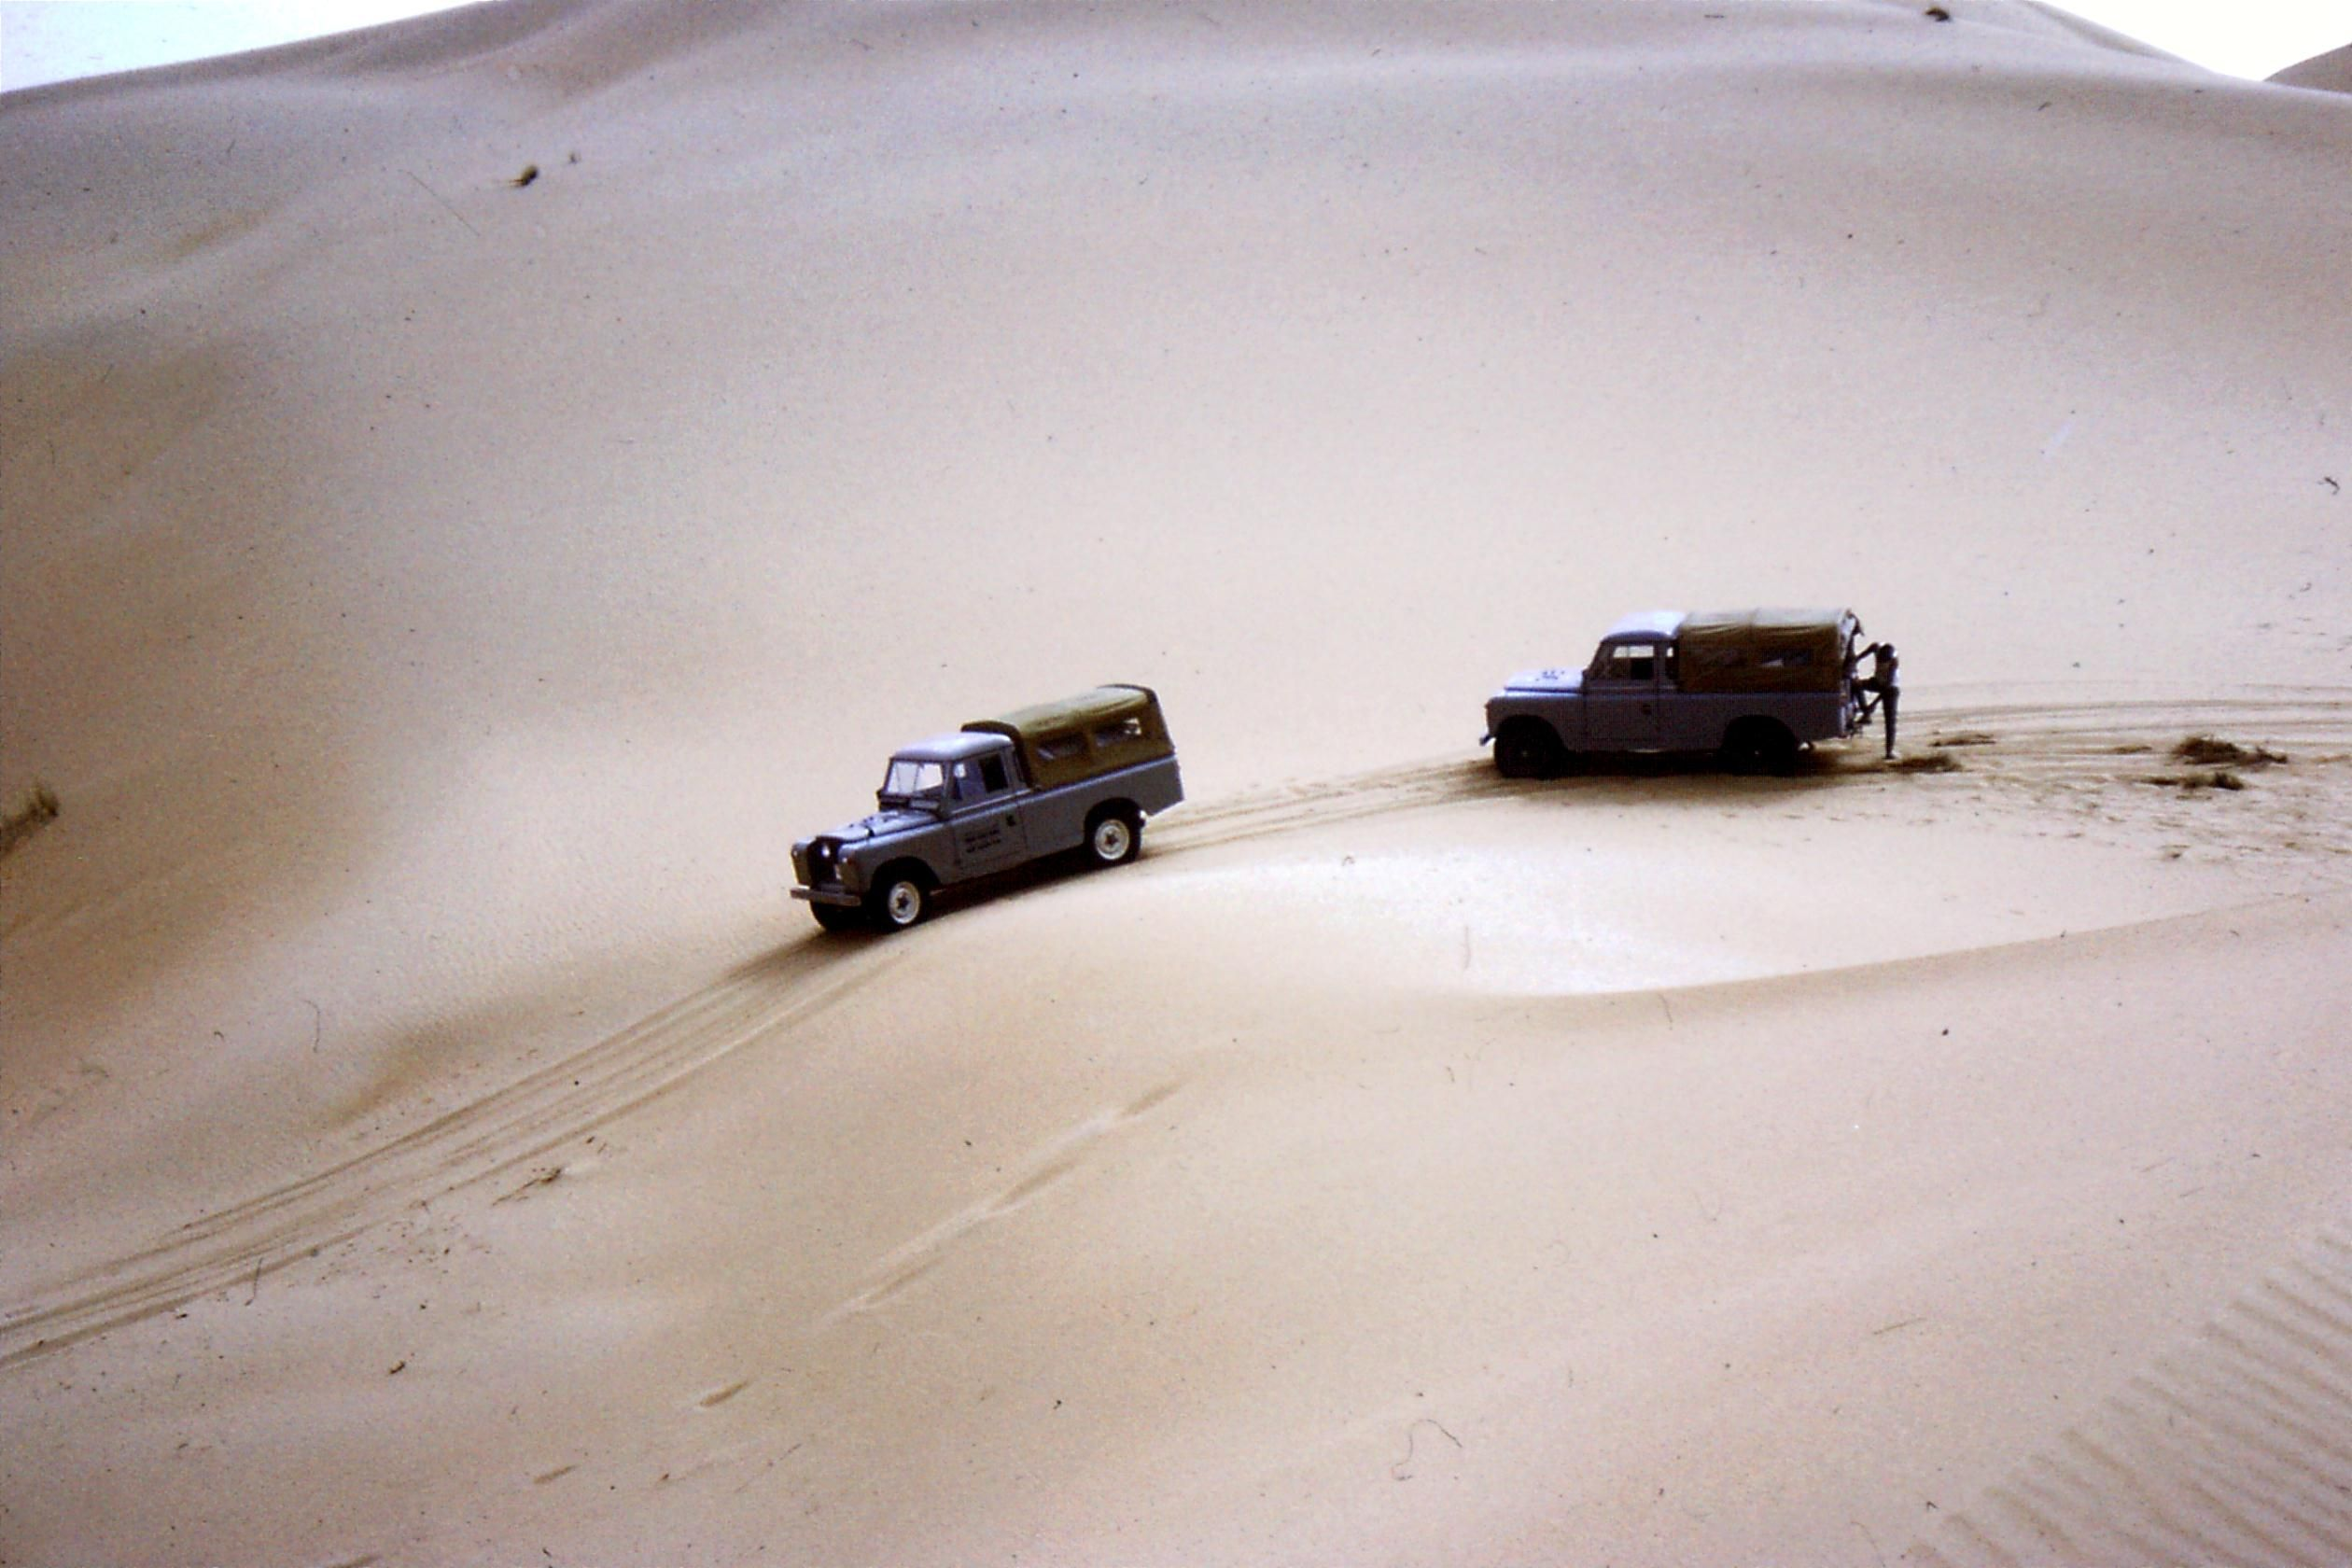 Land Rover Film Celebrates Life as it Used to be in the UAE